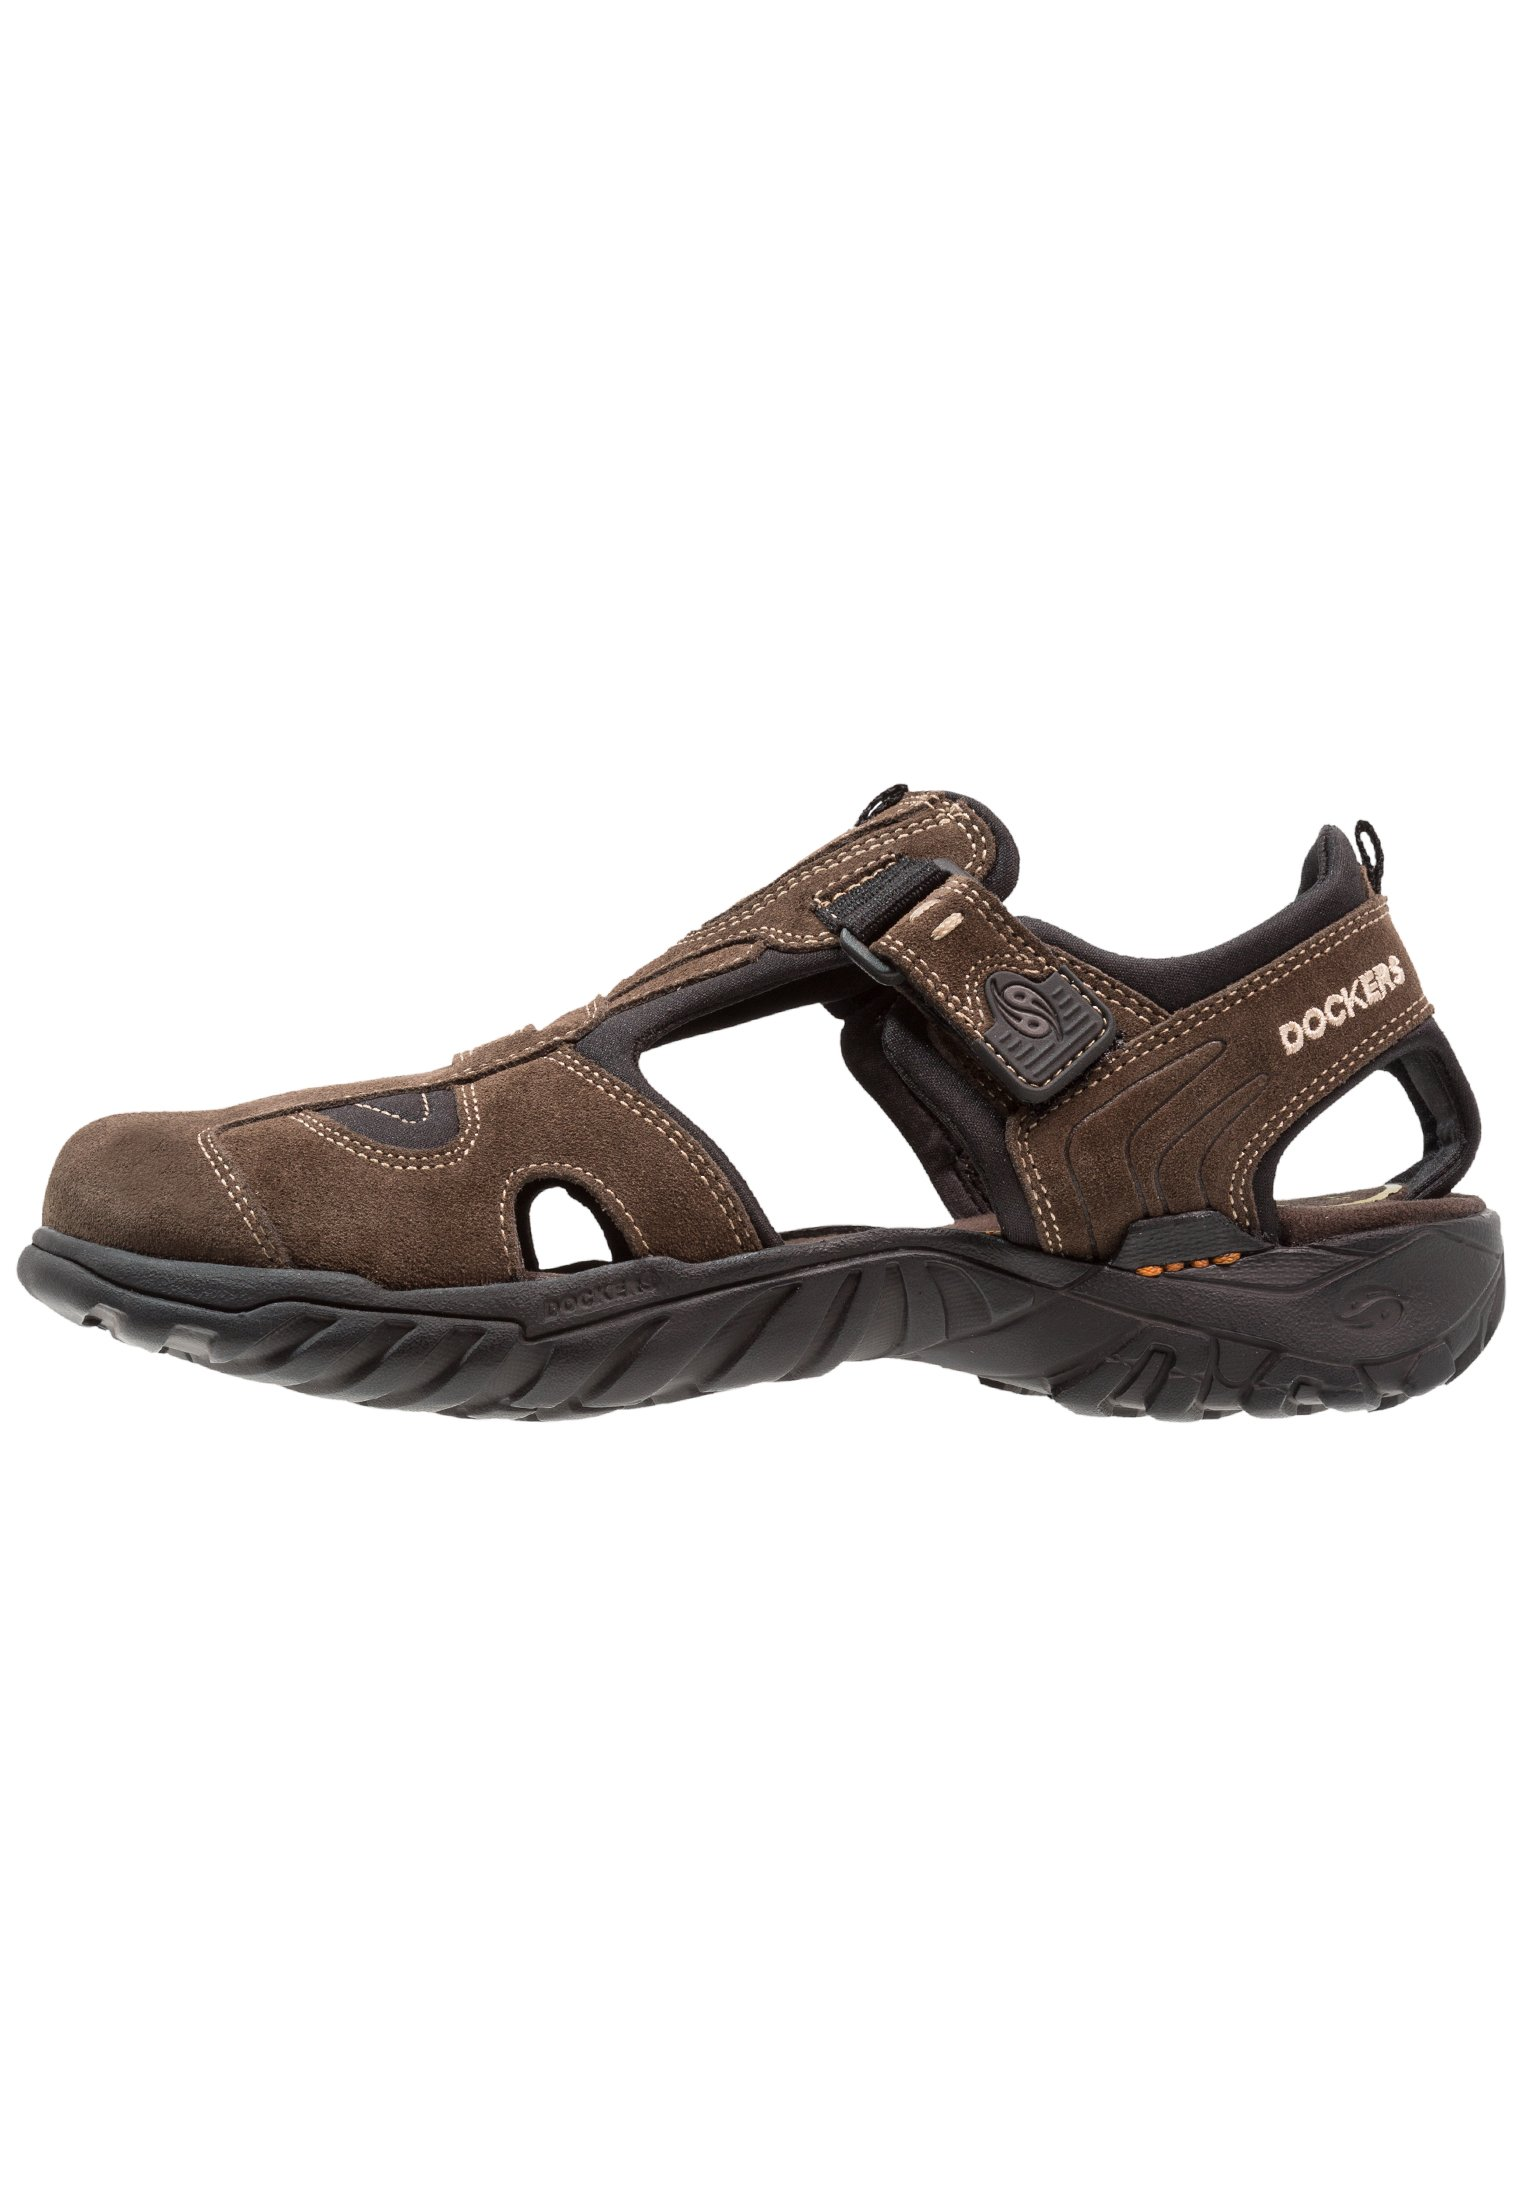 Outdoorsandalen cafe